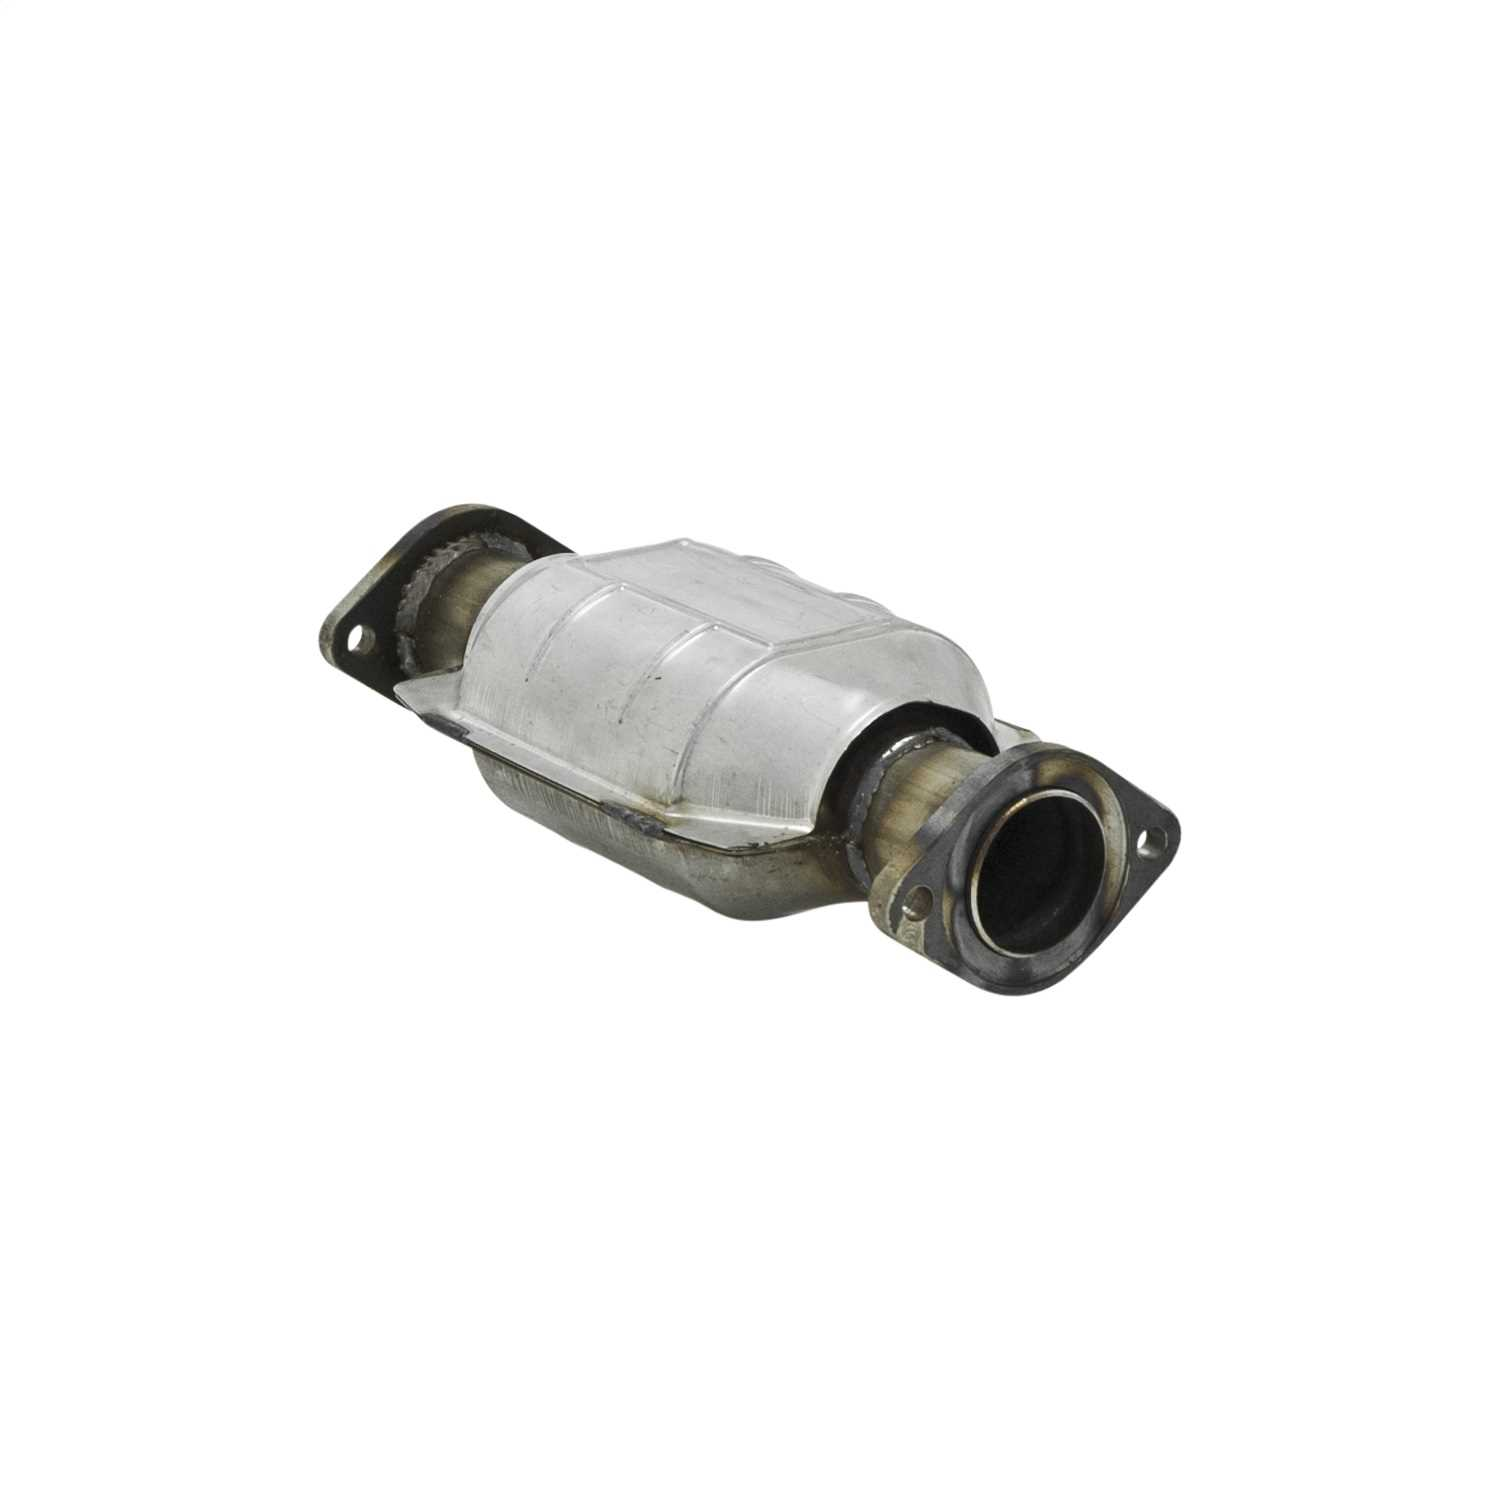 2050001 Flowmaster 49 State Catalytic Converters Direct Fit Catalytic Converter